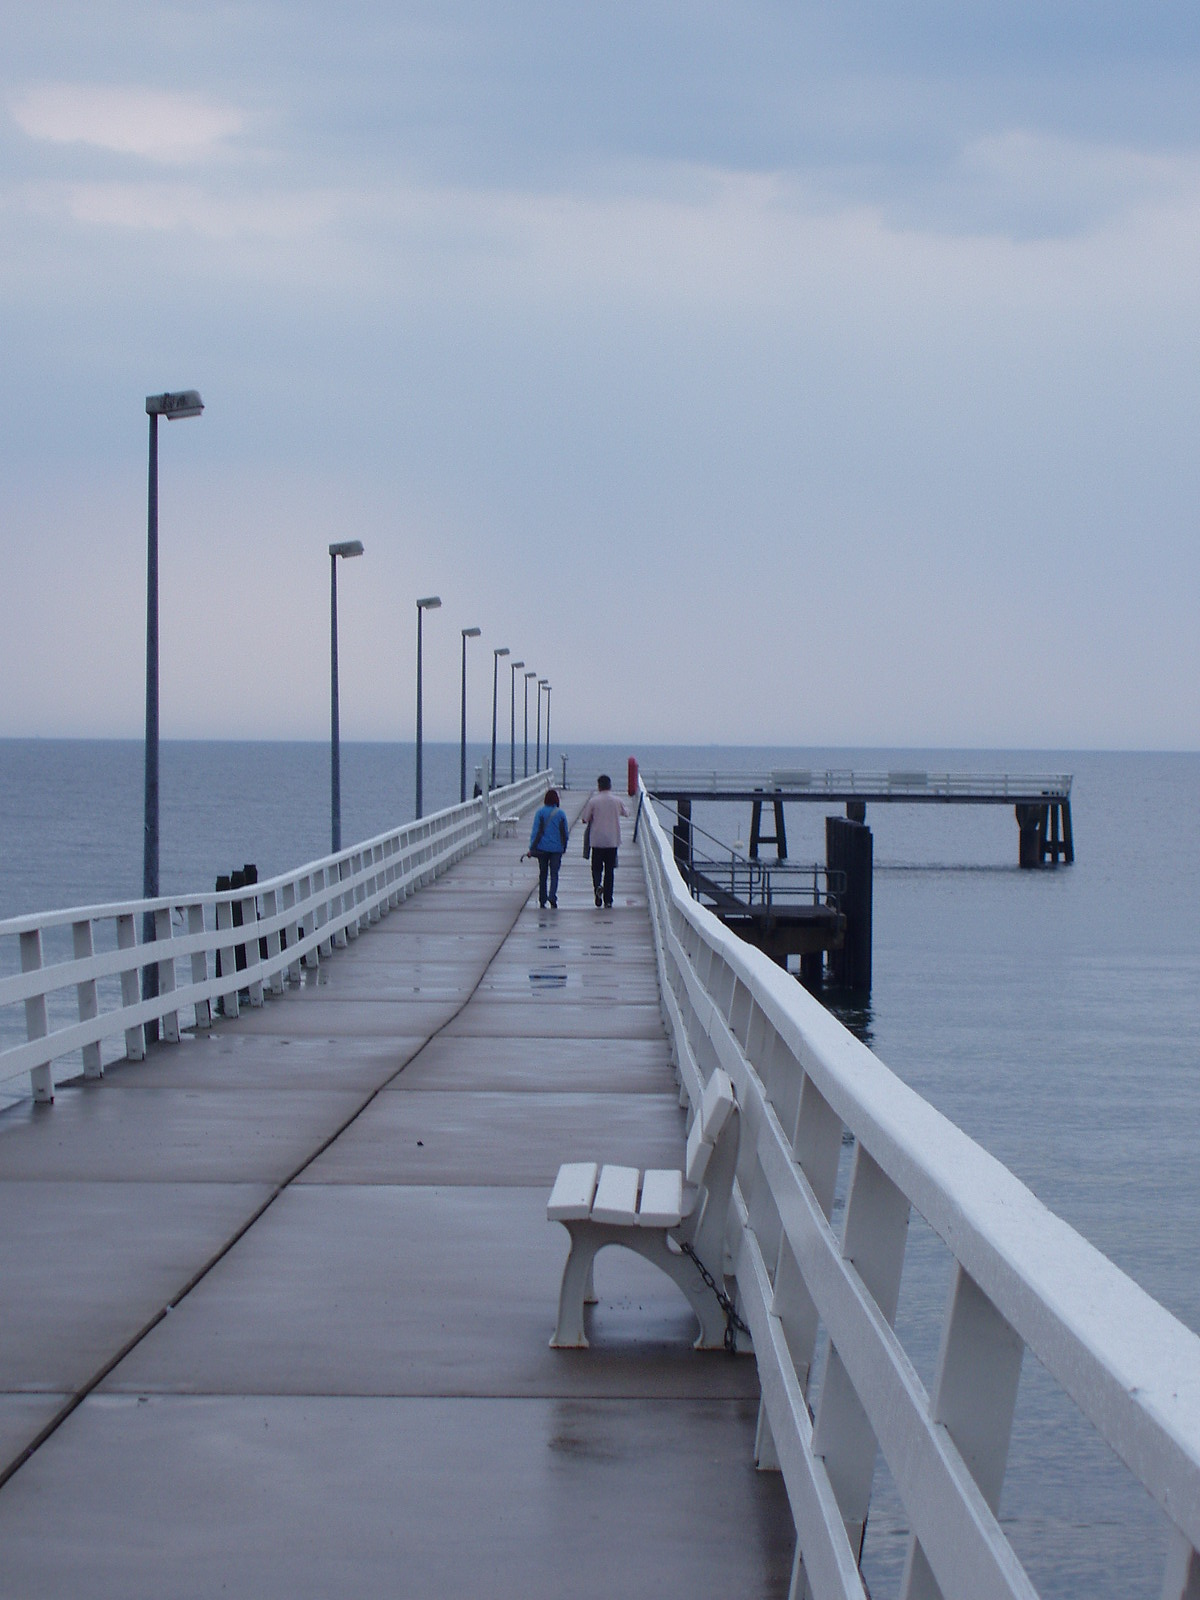 pier on a rainy afternoon, Timmendorfer Strand